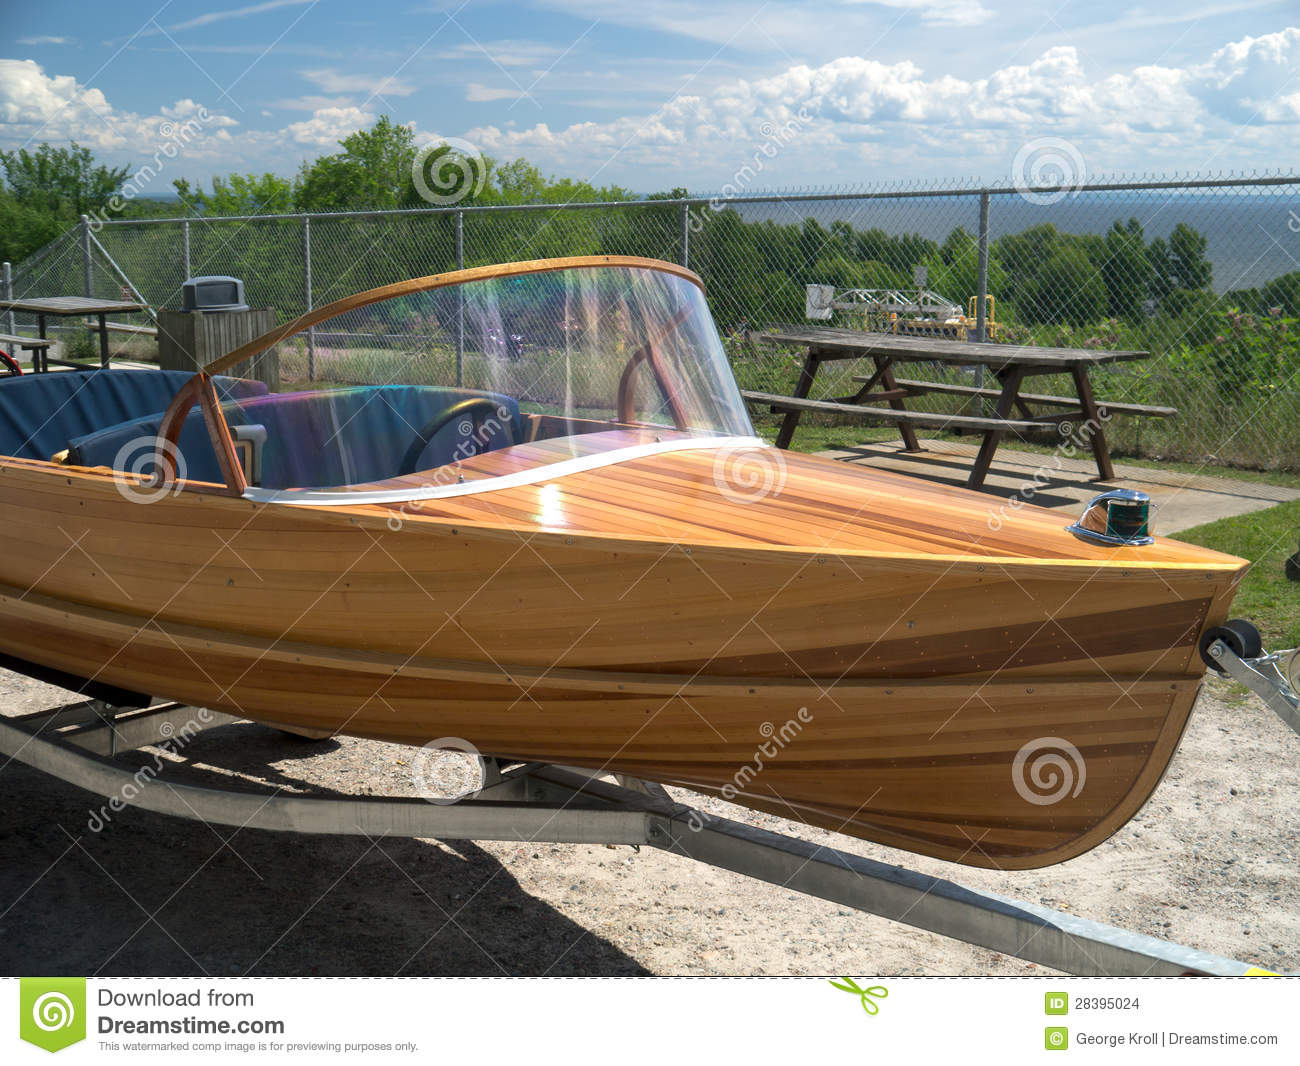 Stock Images: Cedar Strip Wood Speed Boat on Trailer. Image: 28395024